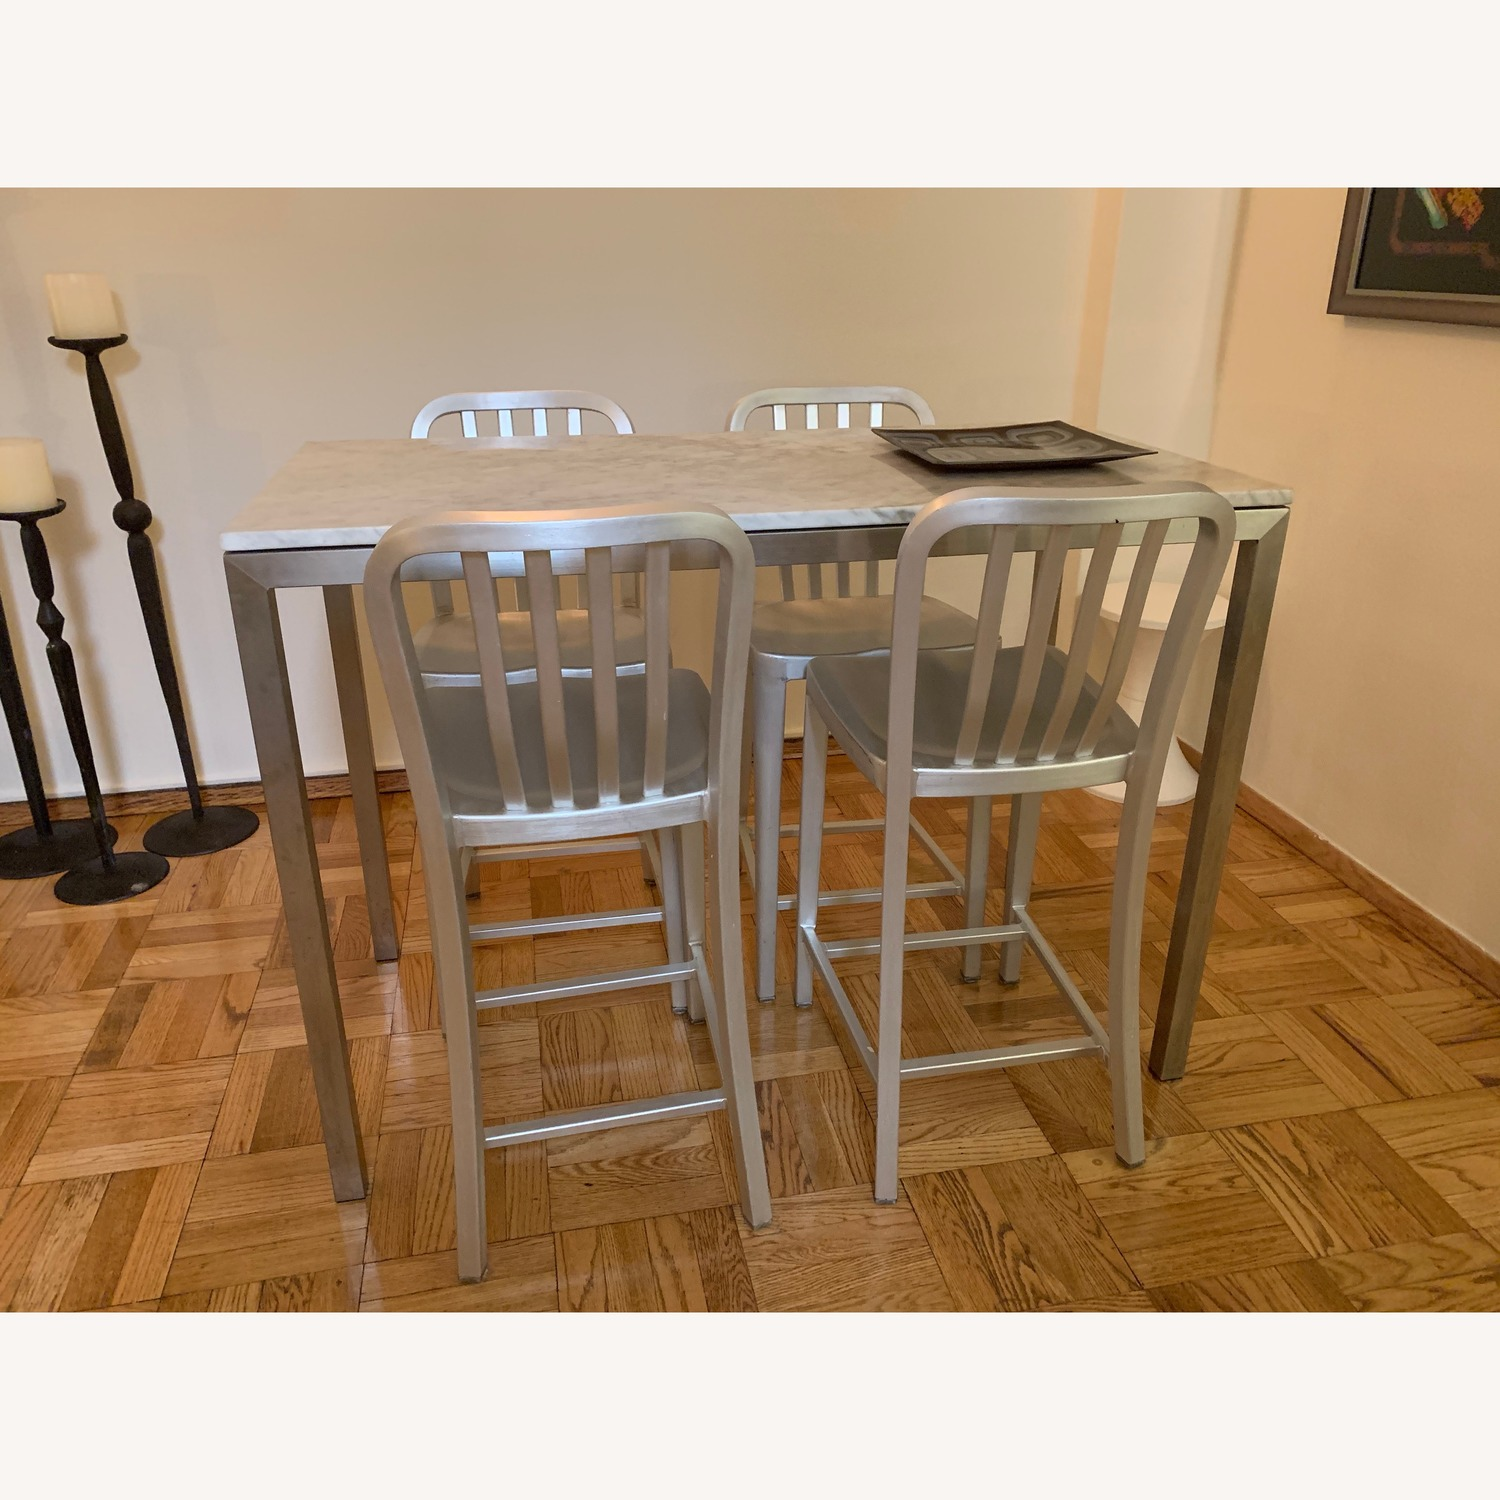 Room & Board Portica Counter Table w/ 4 Stools - image-4